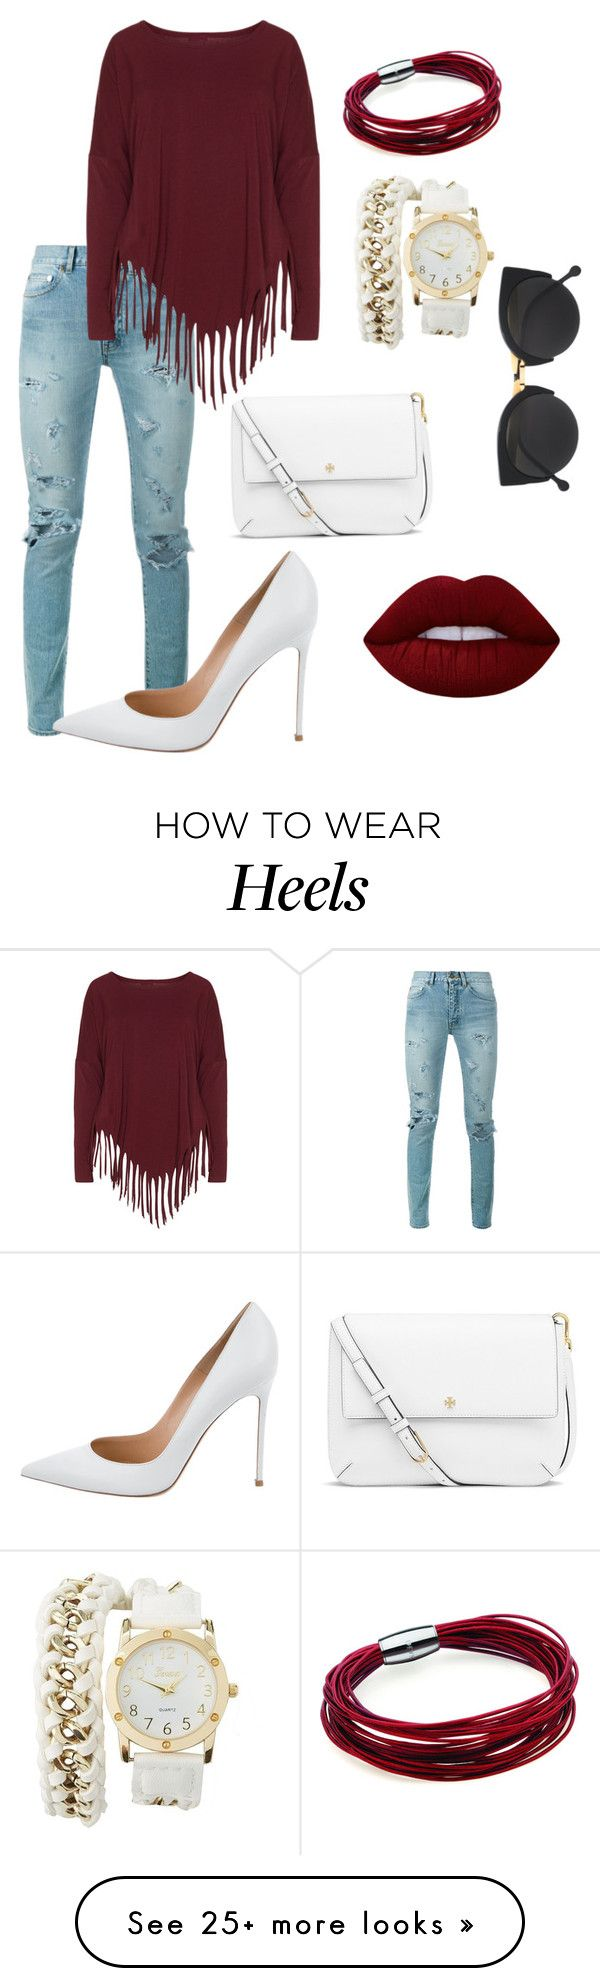 """White heels"" by nicoletay1or on Polyvore featuring Yves Saint Laurent, Boris, Gianvito Rossi, Charlotte Russe, Tory Burch, Lime Crime and RetroSuperFuture"